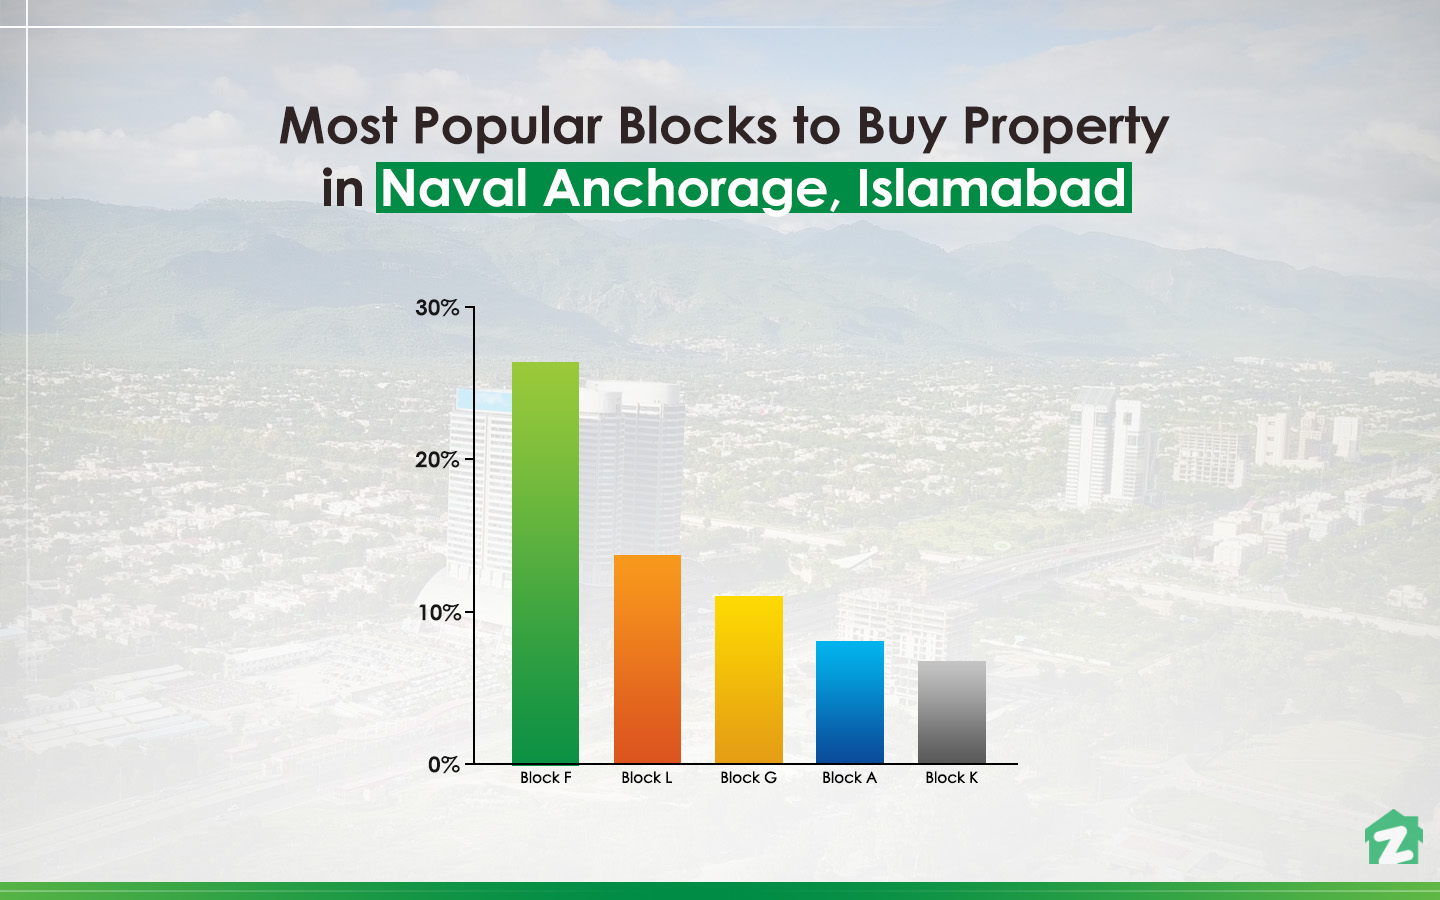 Most Popular Blocks to Buy Property in Naval Anchorage Islamabad